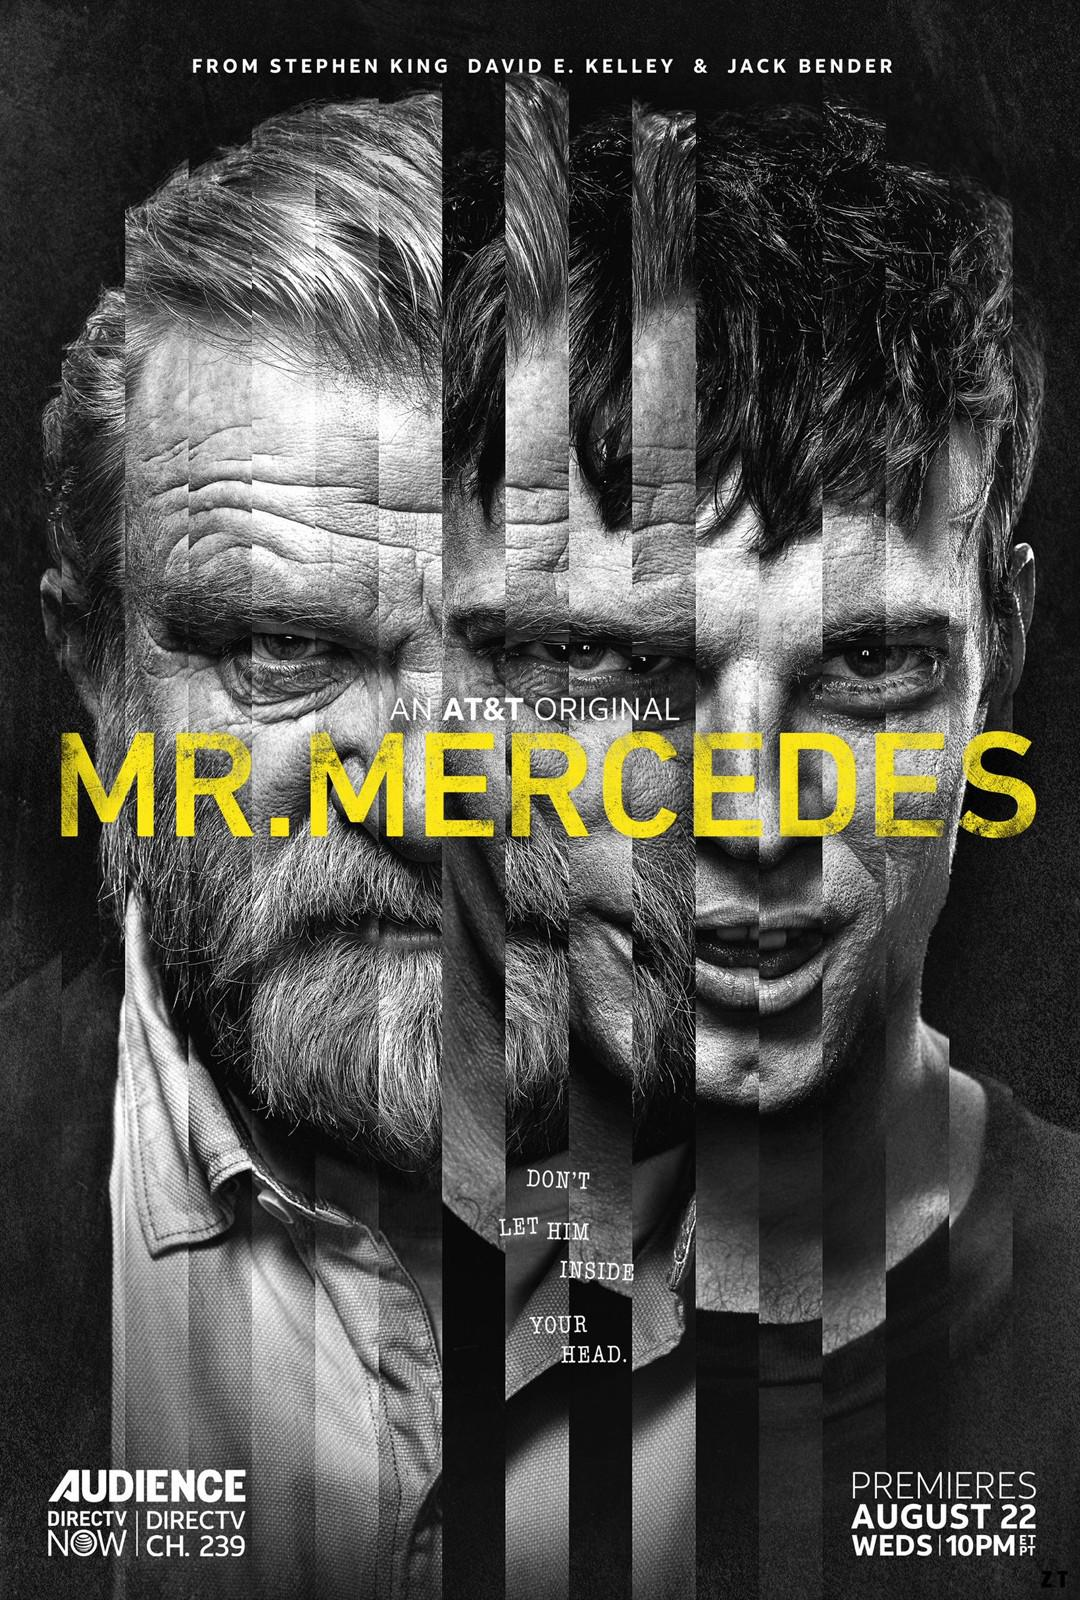 Telecharger Mr. Mercedes- Saison 2 [08/??] VOSTFR | Qualité HD 720p